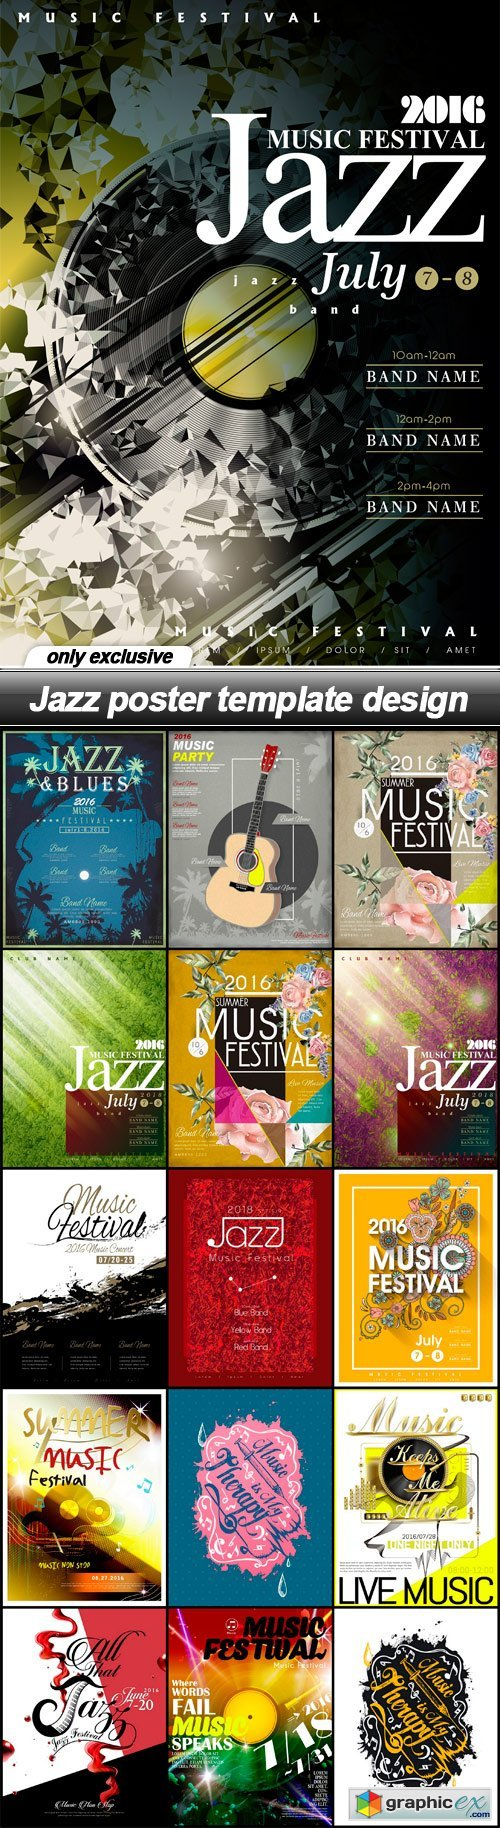 Jazz poster template design - 16 EPS